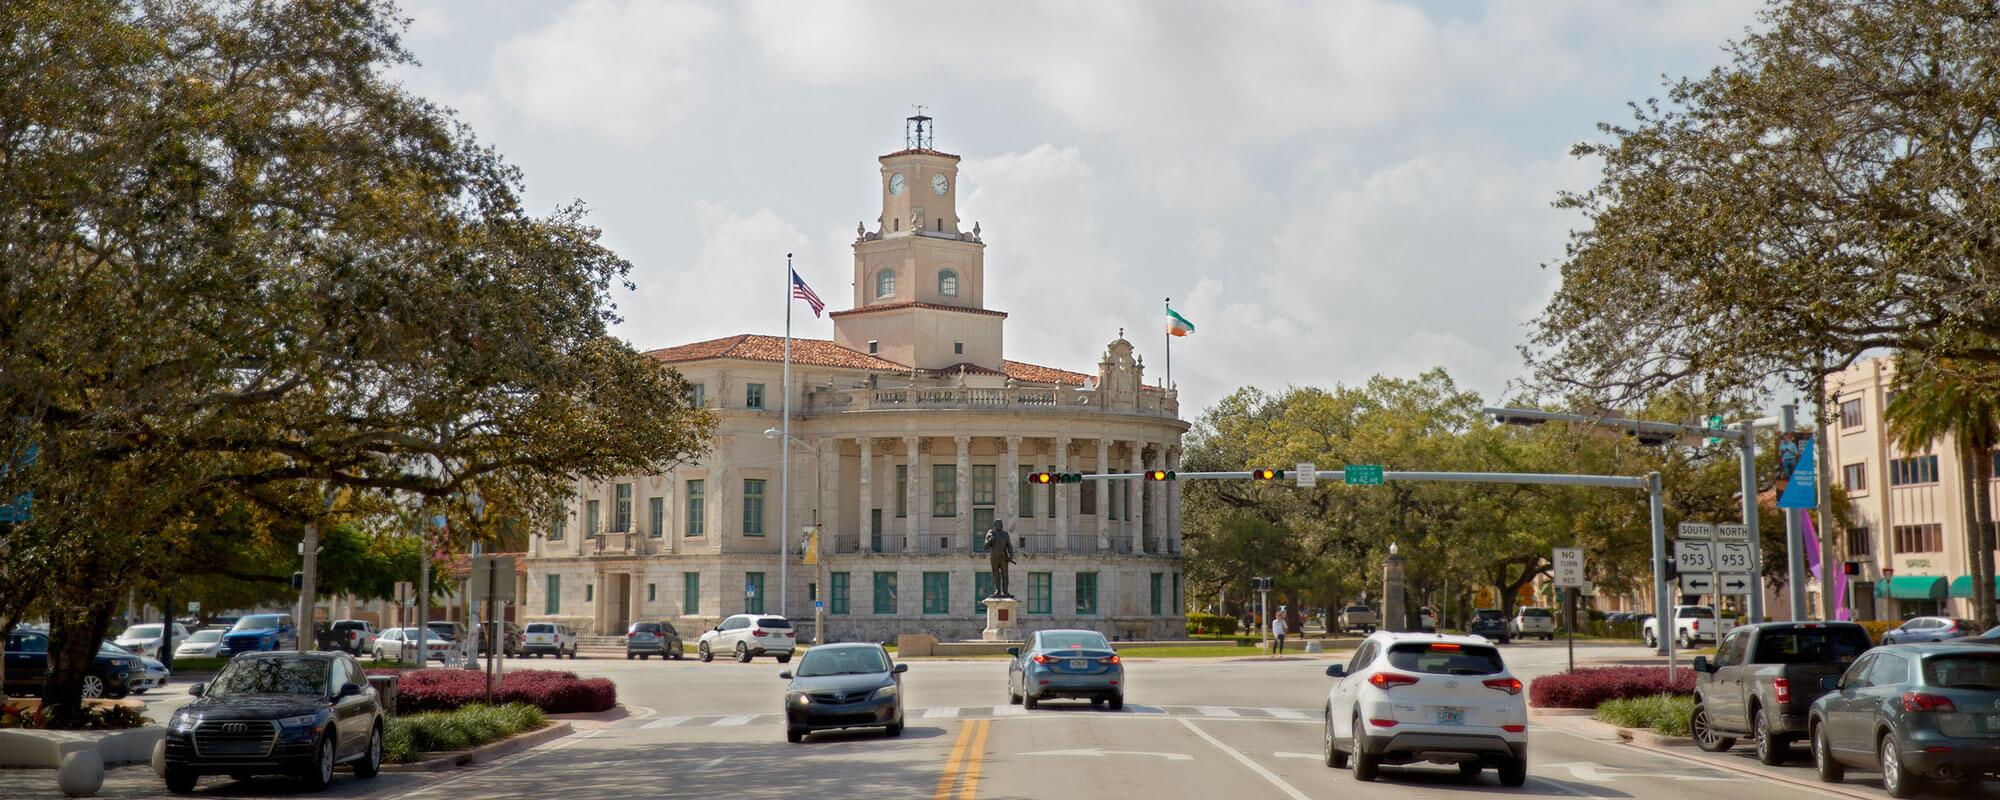 Coral Gables City